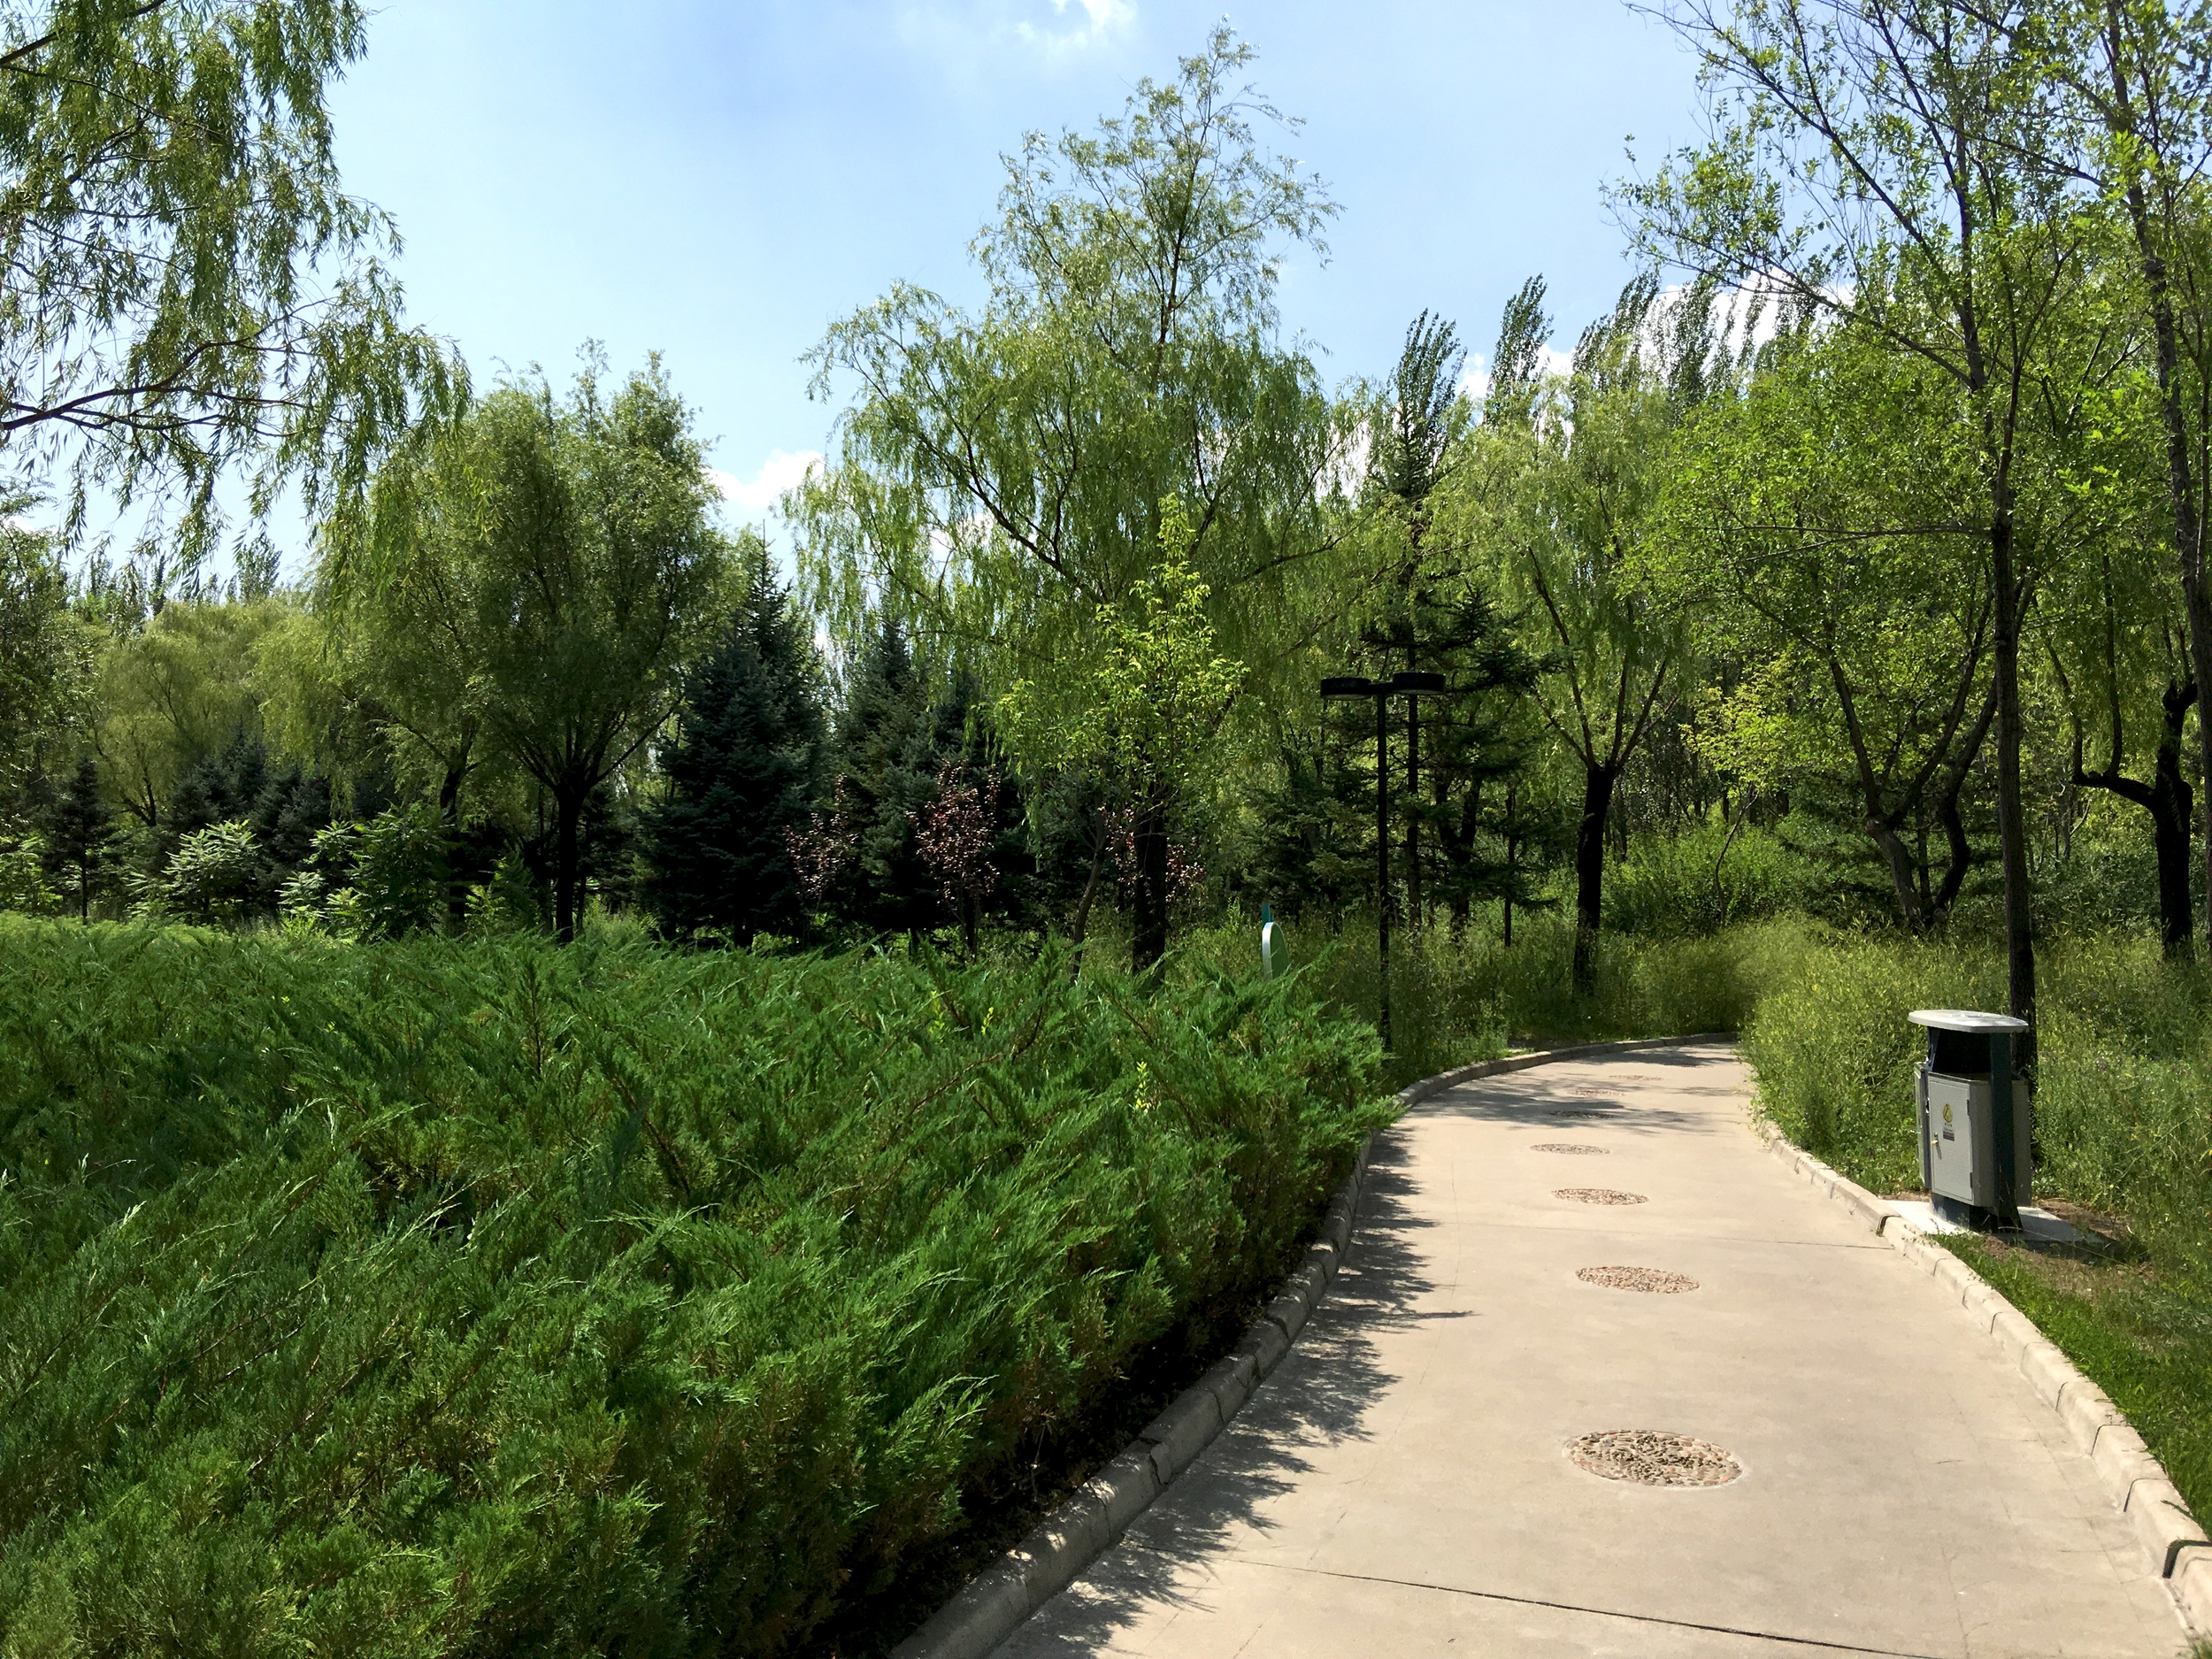 Walking through the park. Wanda Shopping Center is on the other side.